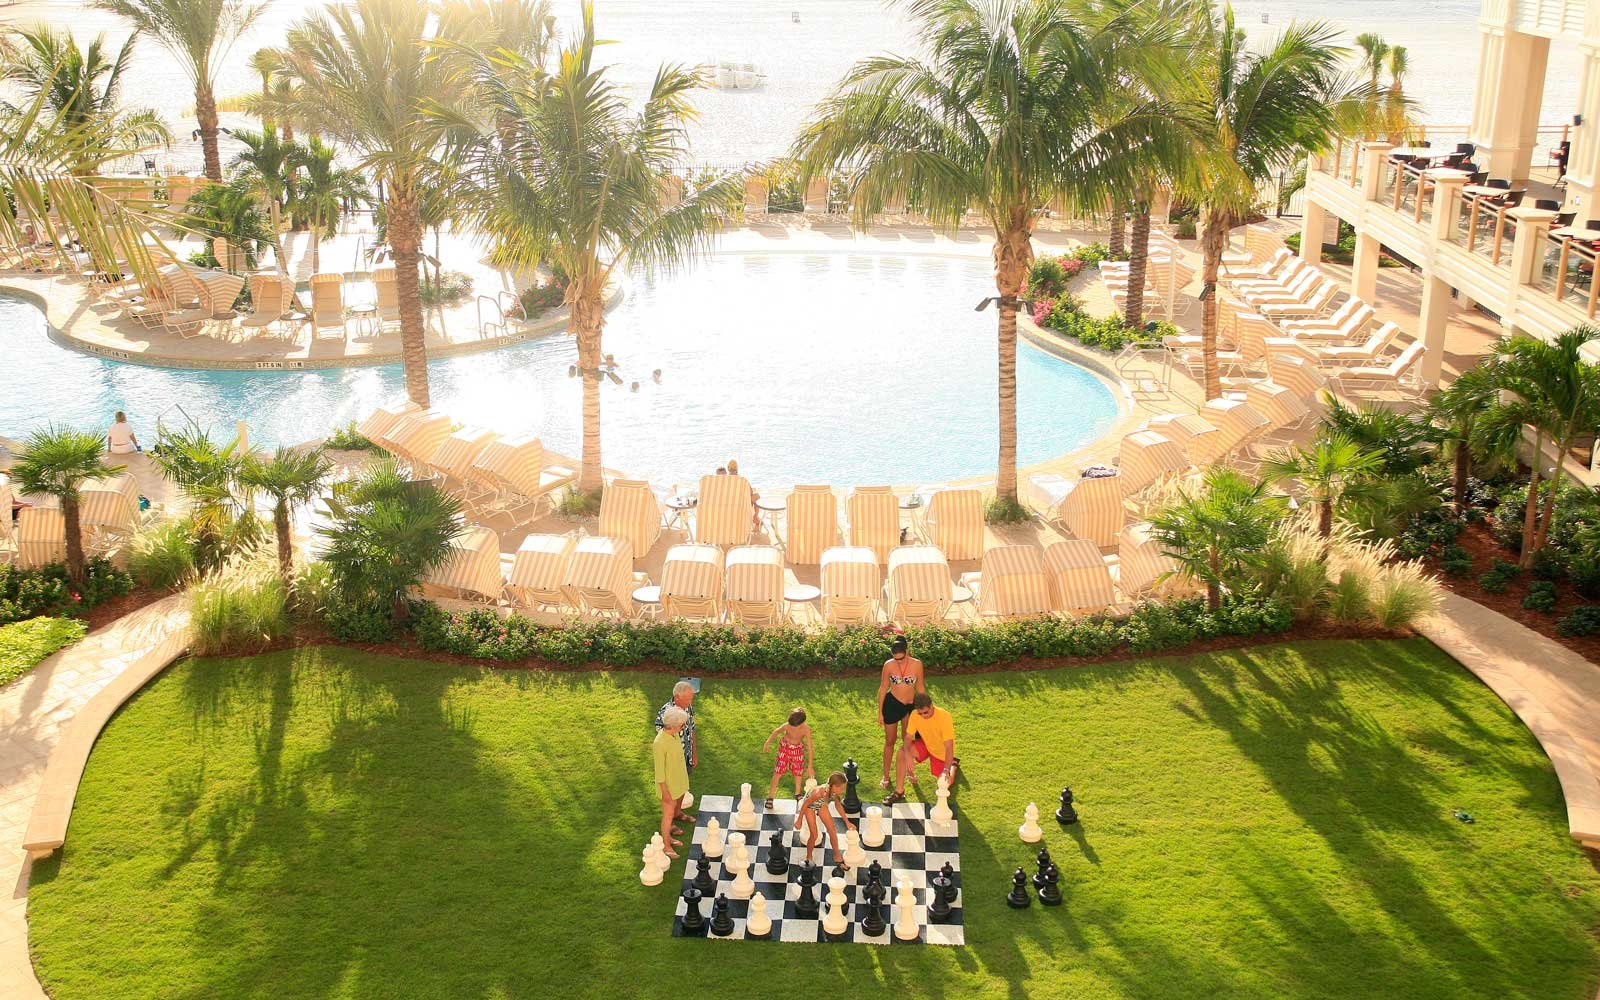 Family playing chess by the pool at the Sandpearl Resort in Clearwater Beach, Florida